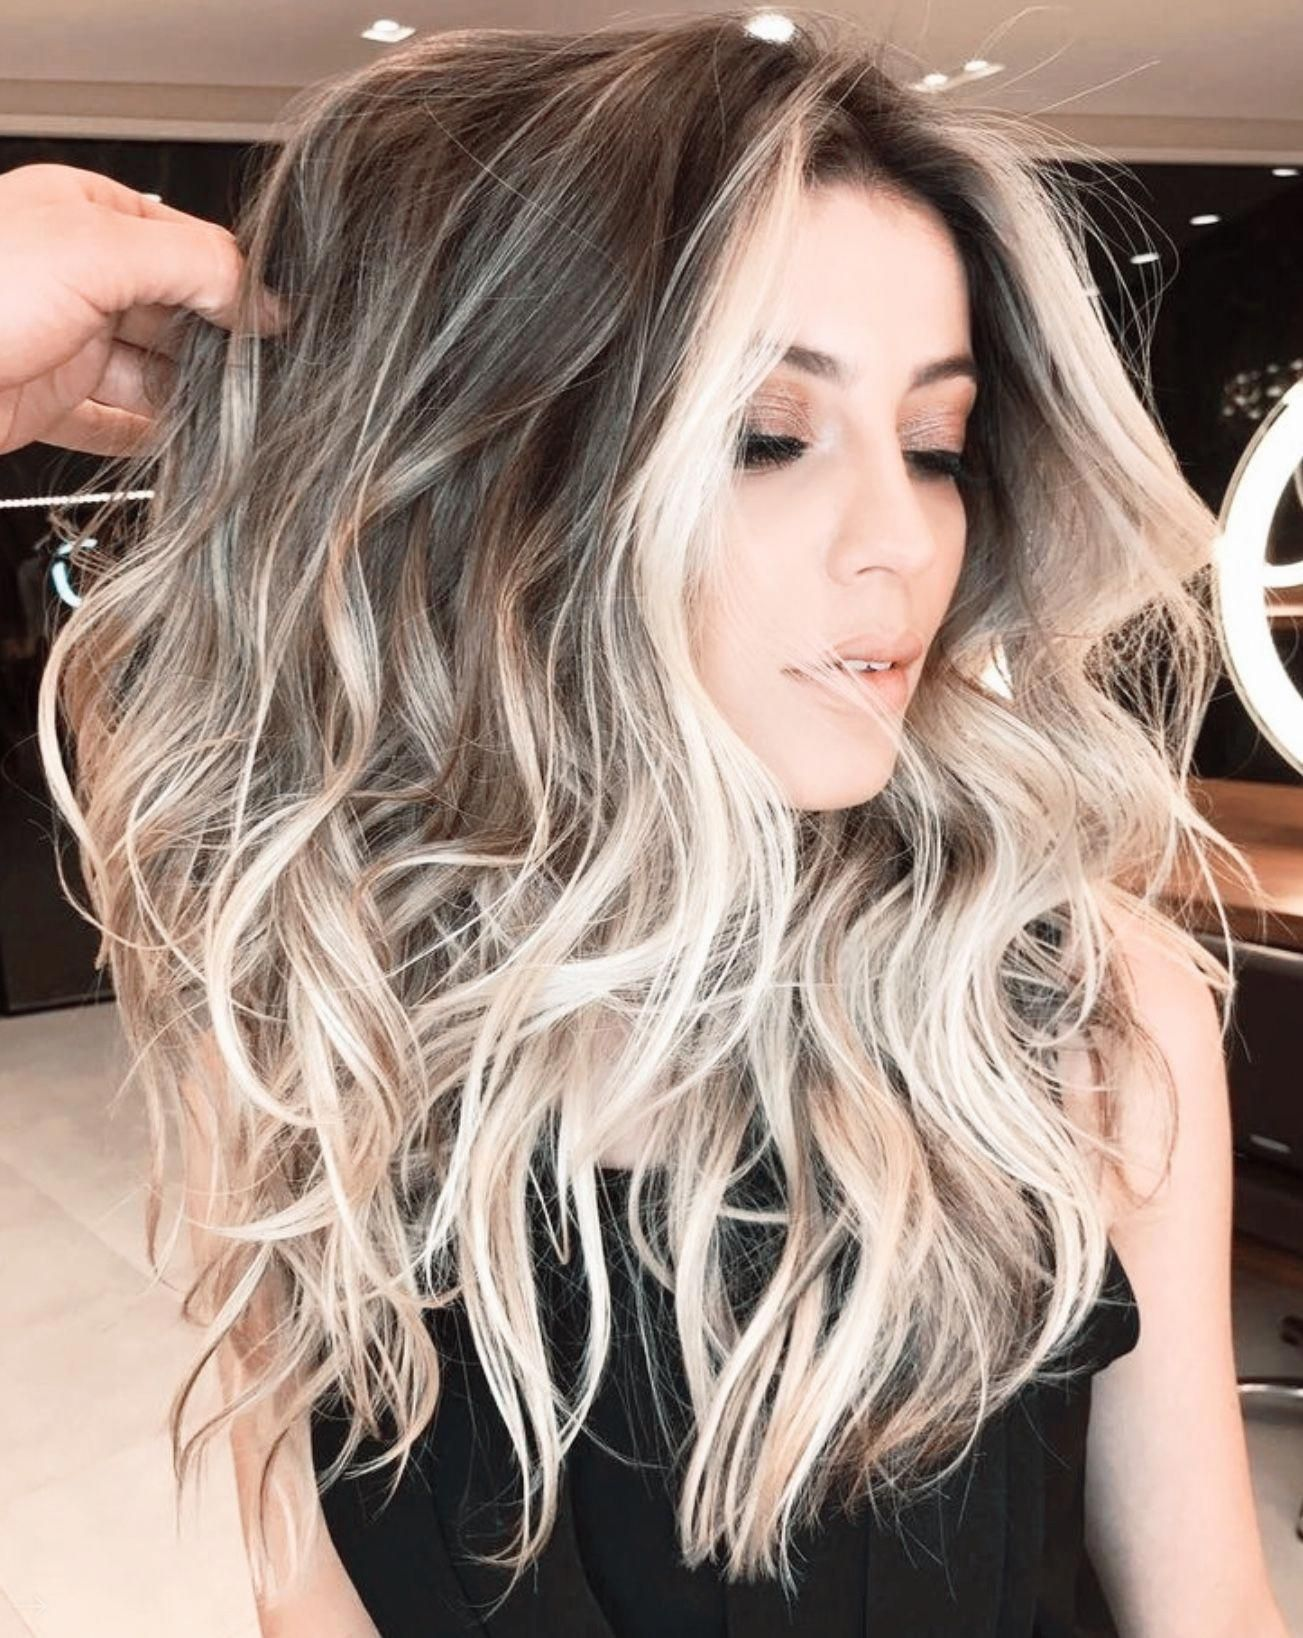 5 Ridiculous Tricks Boho Hairstyles Up Dos Women Hairstyles Color Long Pixie Everyday Hairstyles Boho Older Wome Balayage Hair Brunette Hair Color Hair Styles